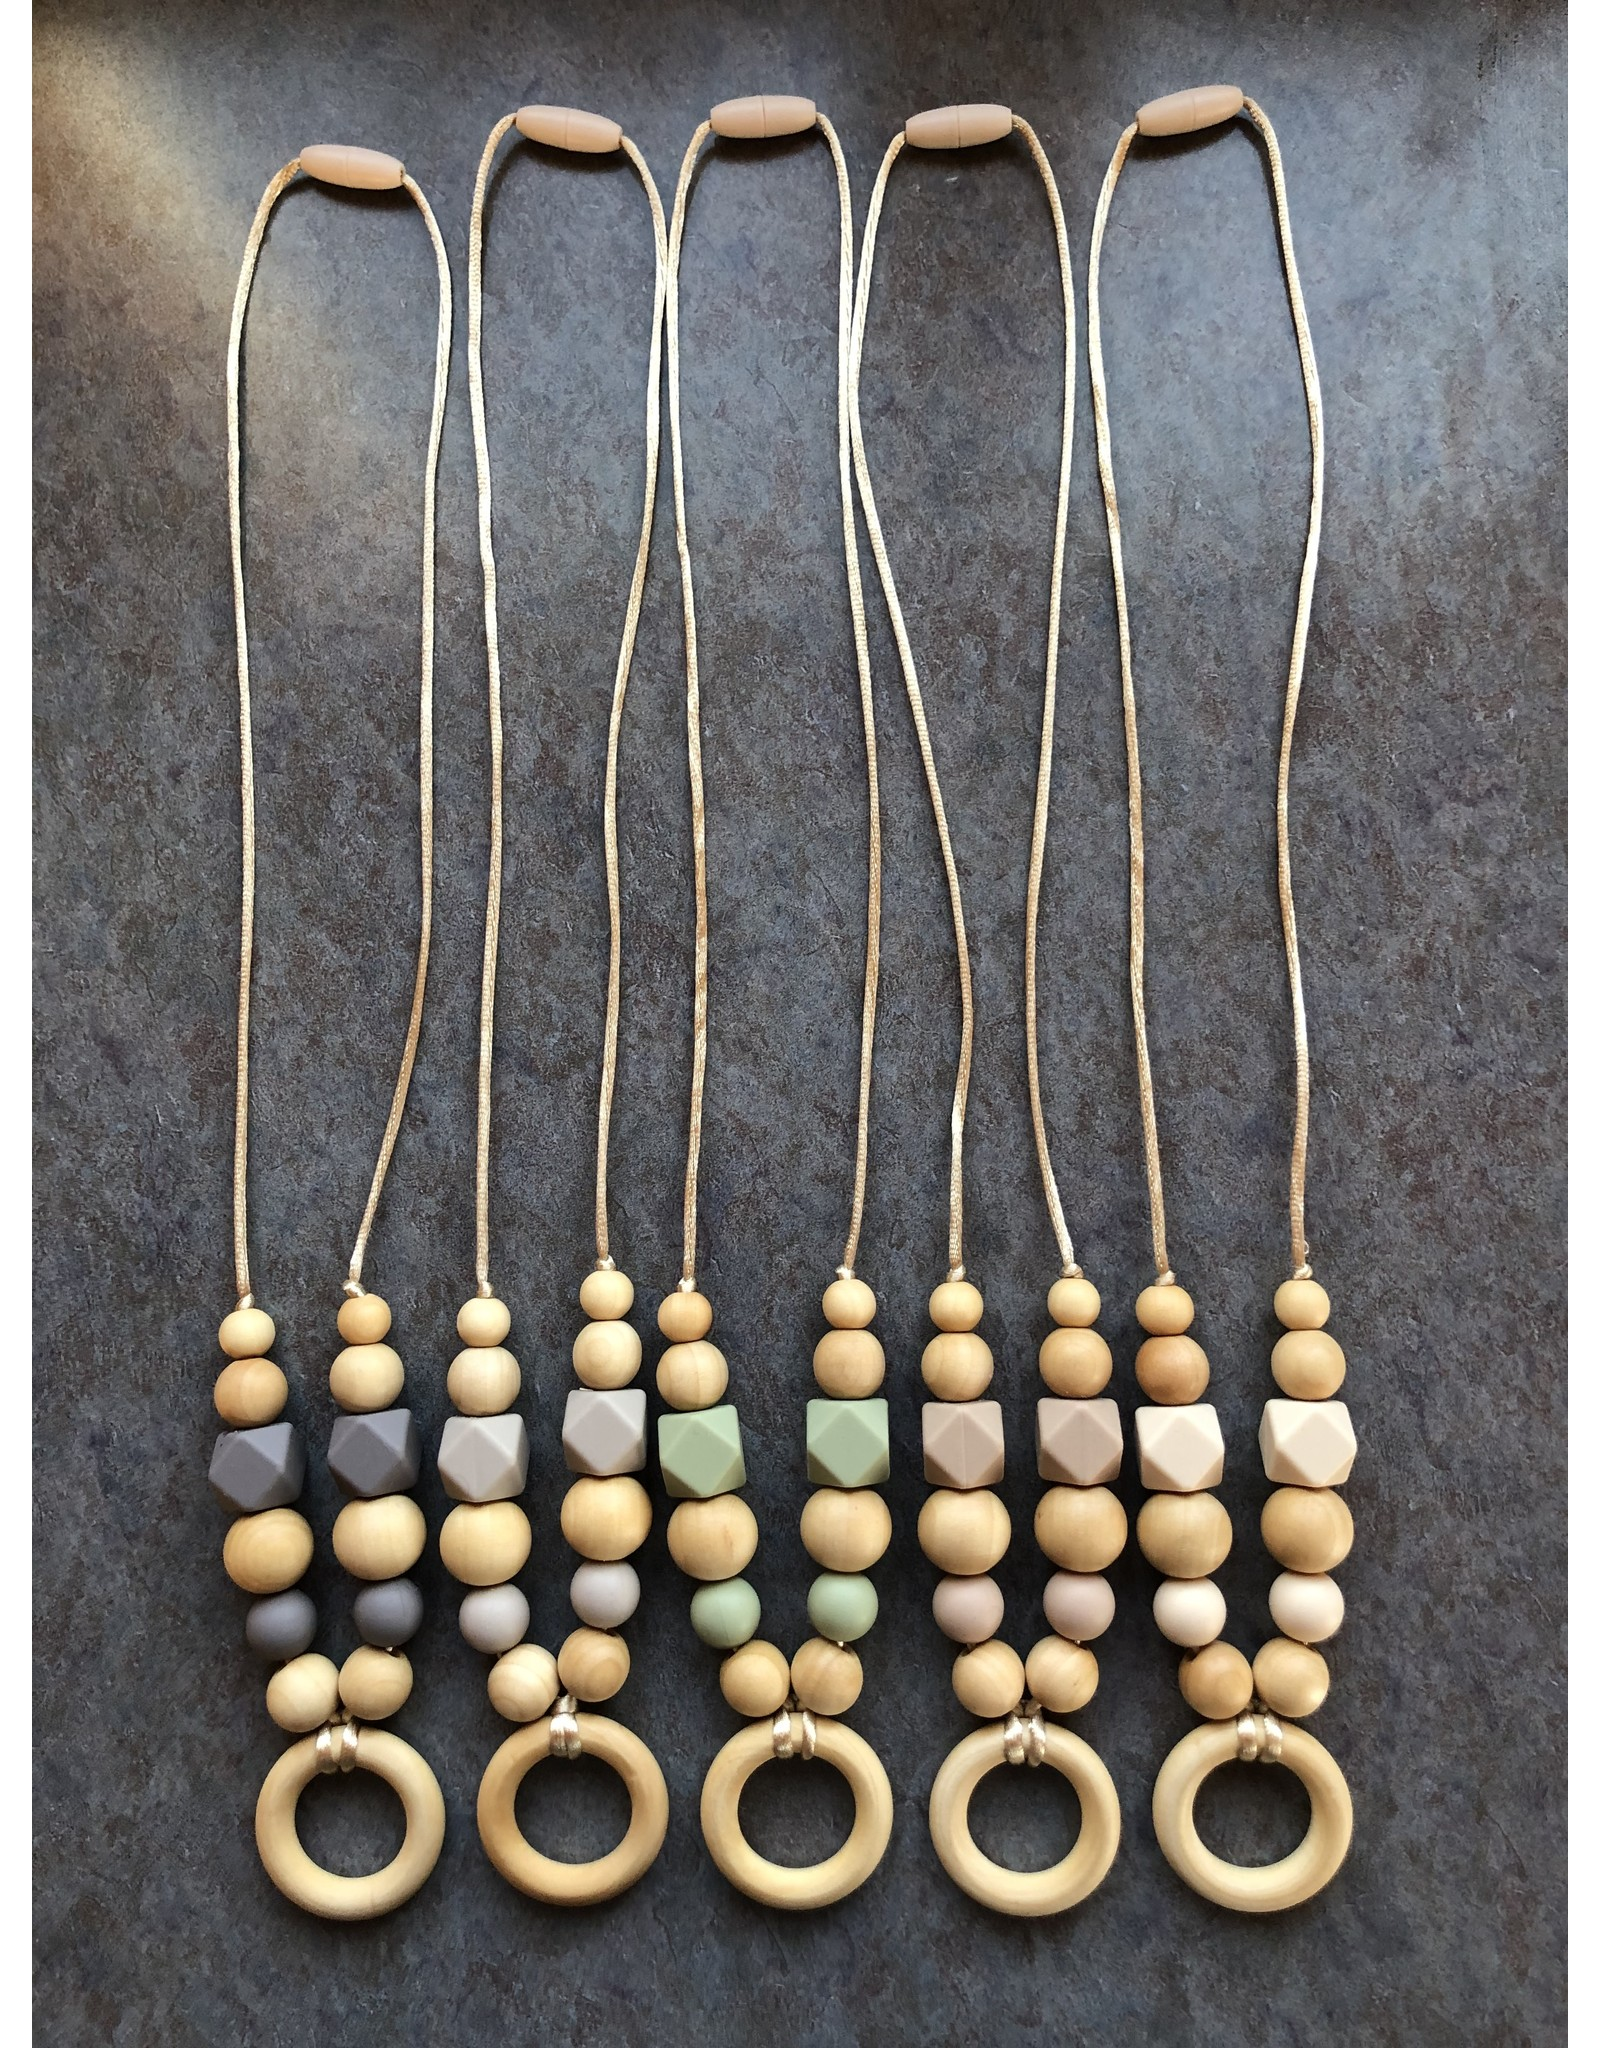 willow nest co Silicone Nursing/Teething Necklace with Maple Wood Circle